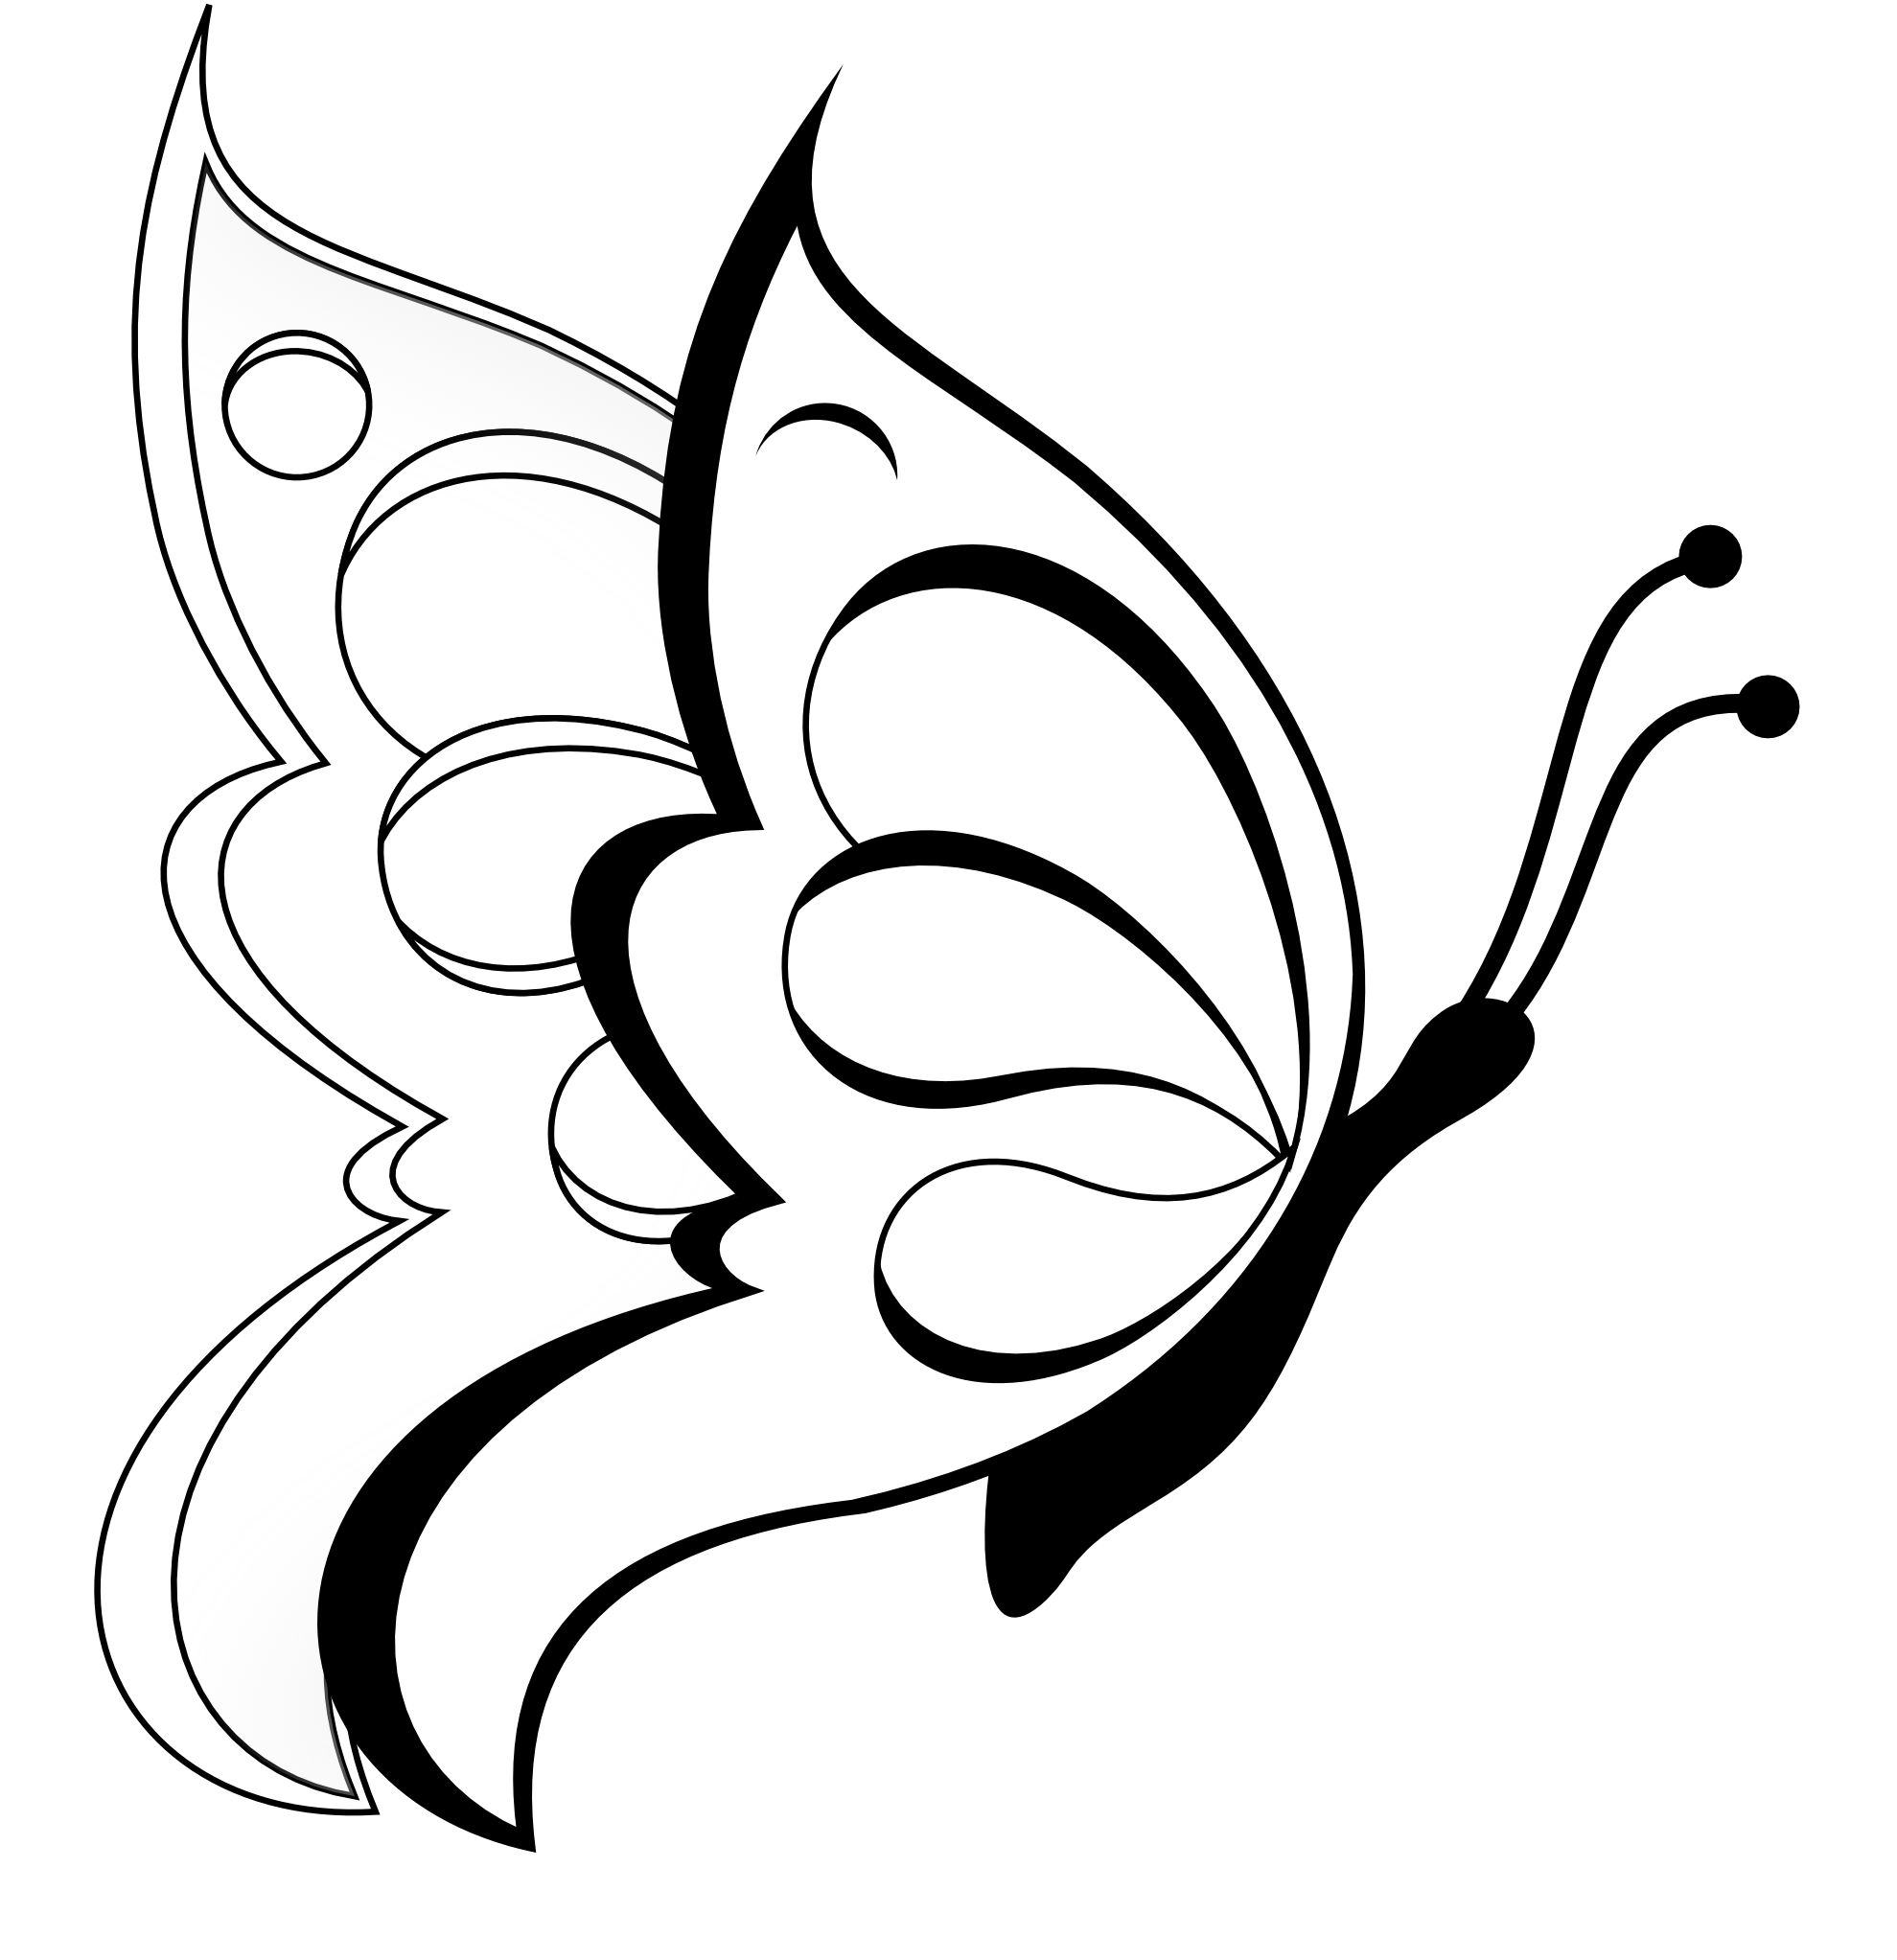 D Shape Line Drawings : Butterfly clipart black and white panda free